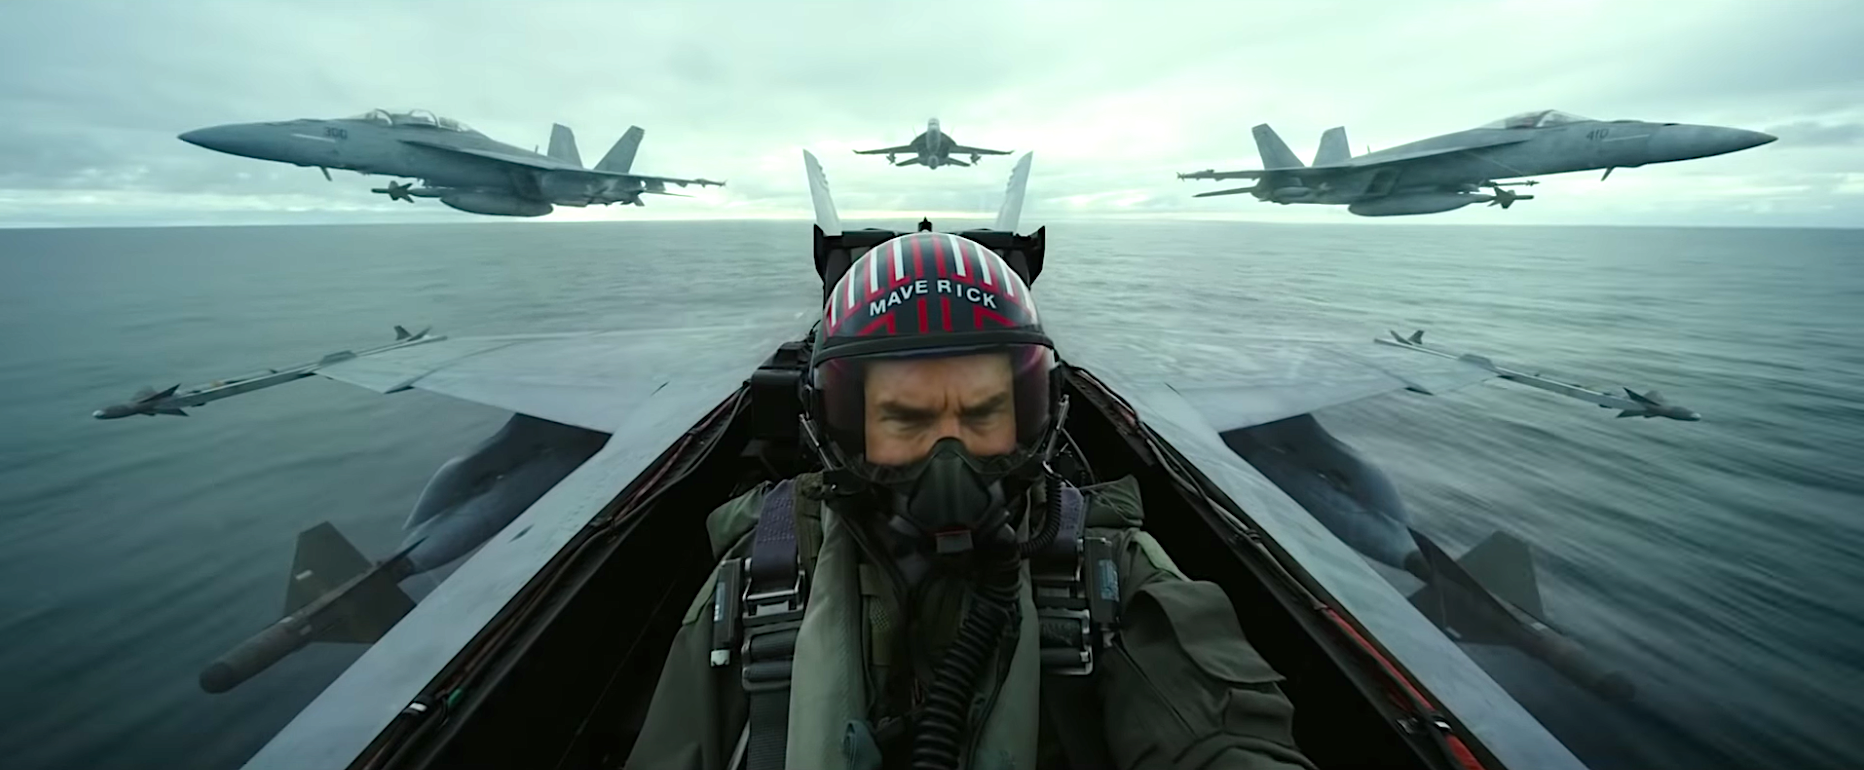 Top Gun: Maverick Once Again Has Tom Cruise Risking Life and Limb For Our Entertainment